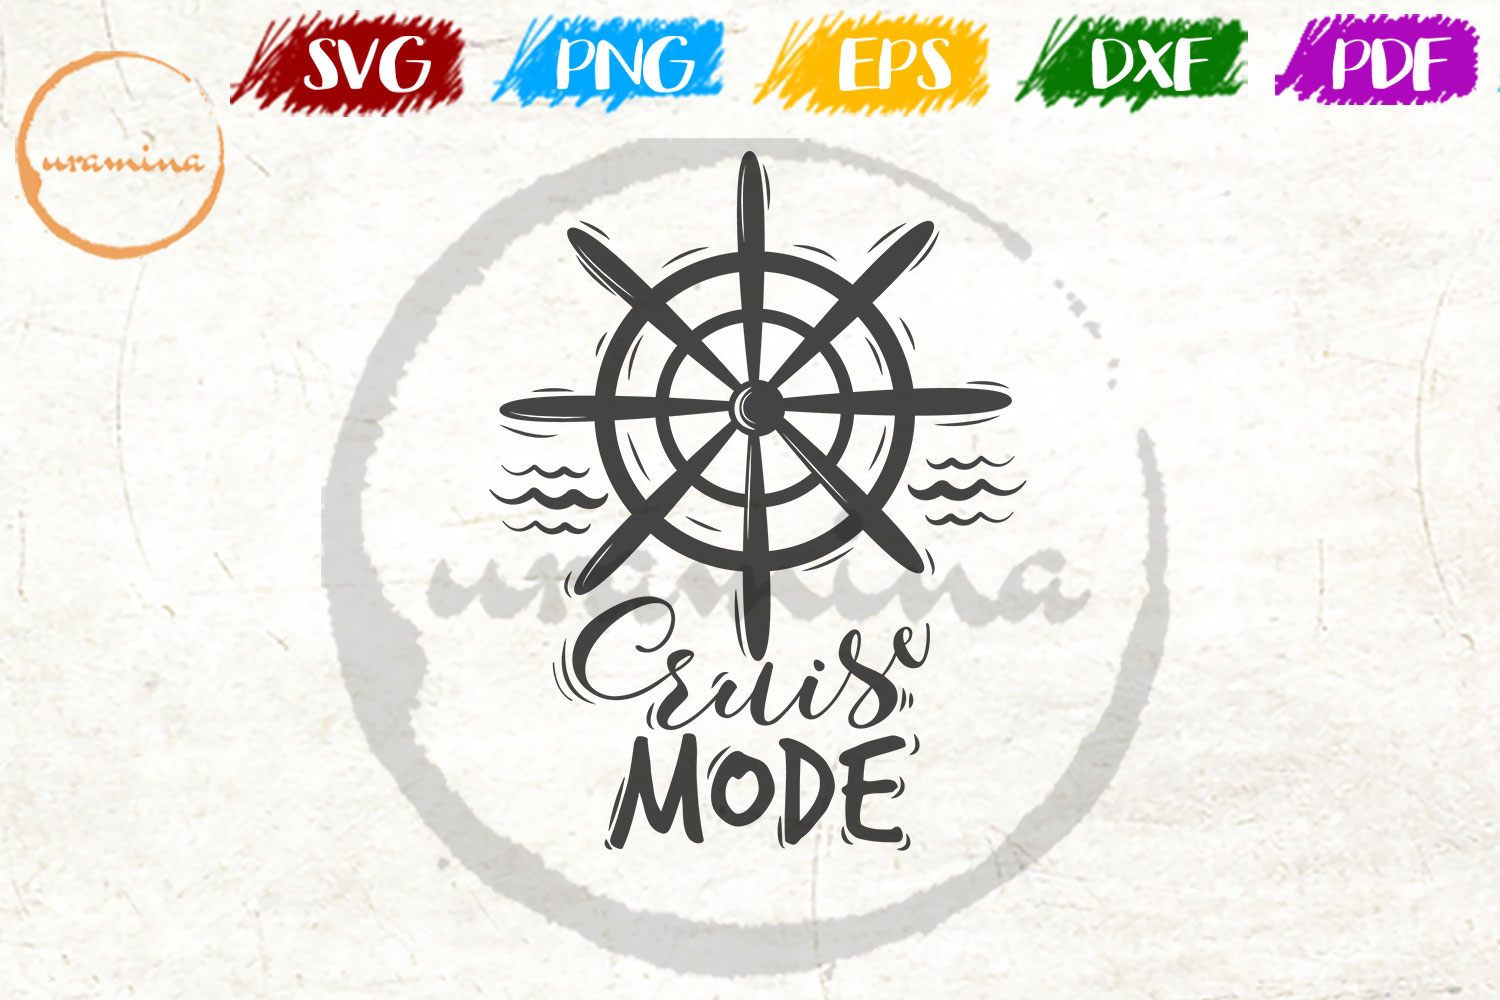 Download Free Cruise Mode Graphic By Uramina Creative Fabrica for Cricut Explore, Silhouette and other cutting machines.